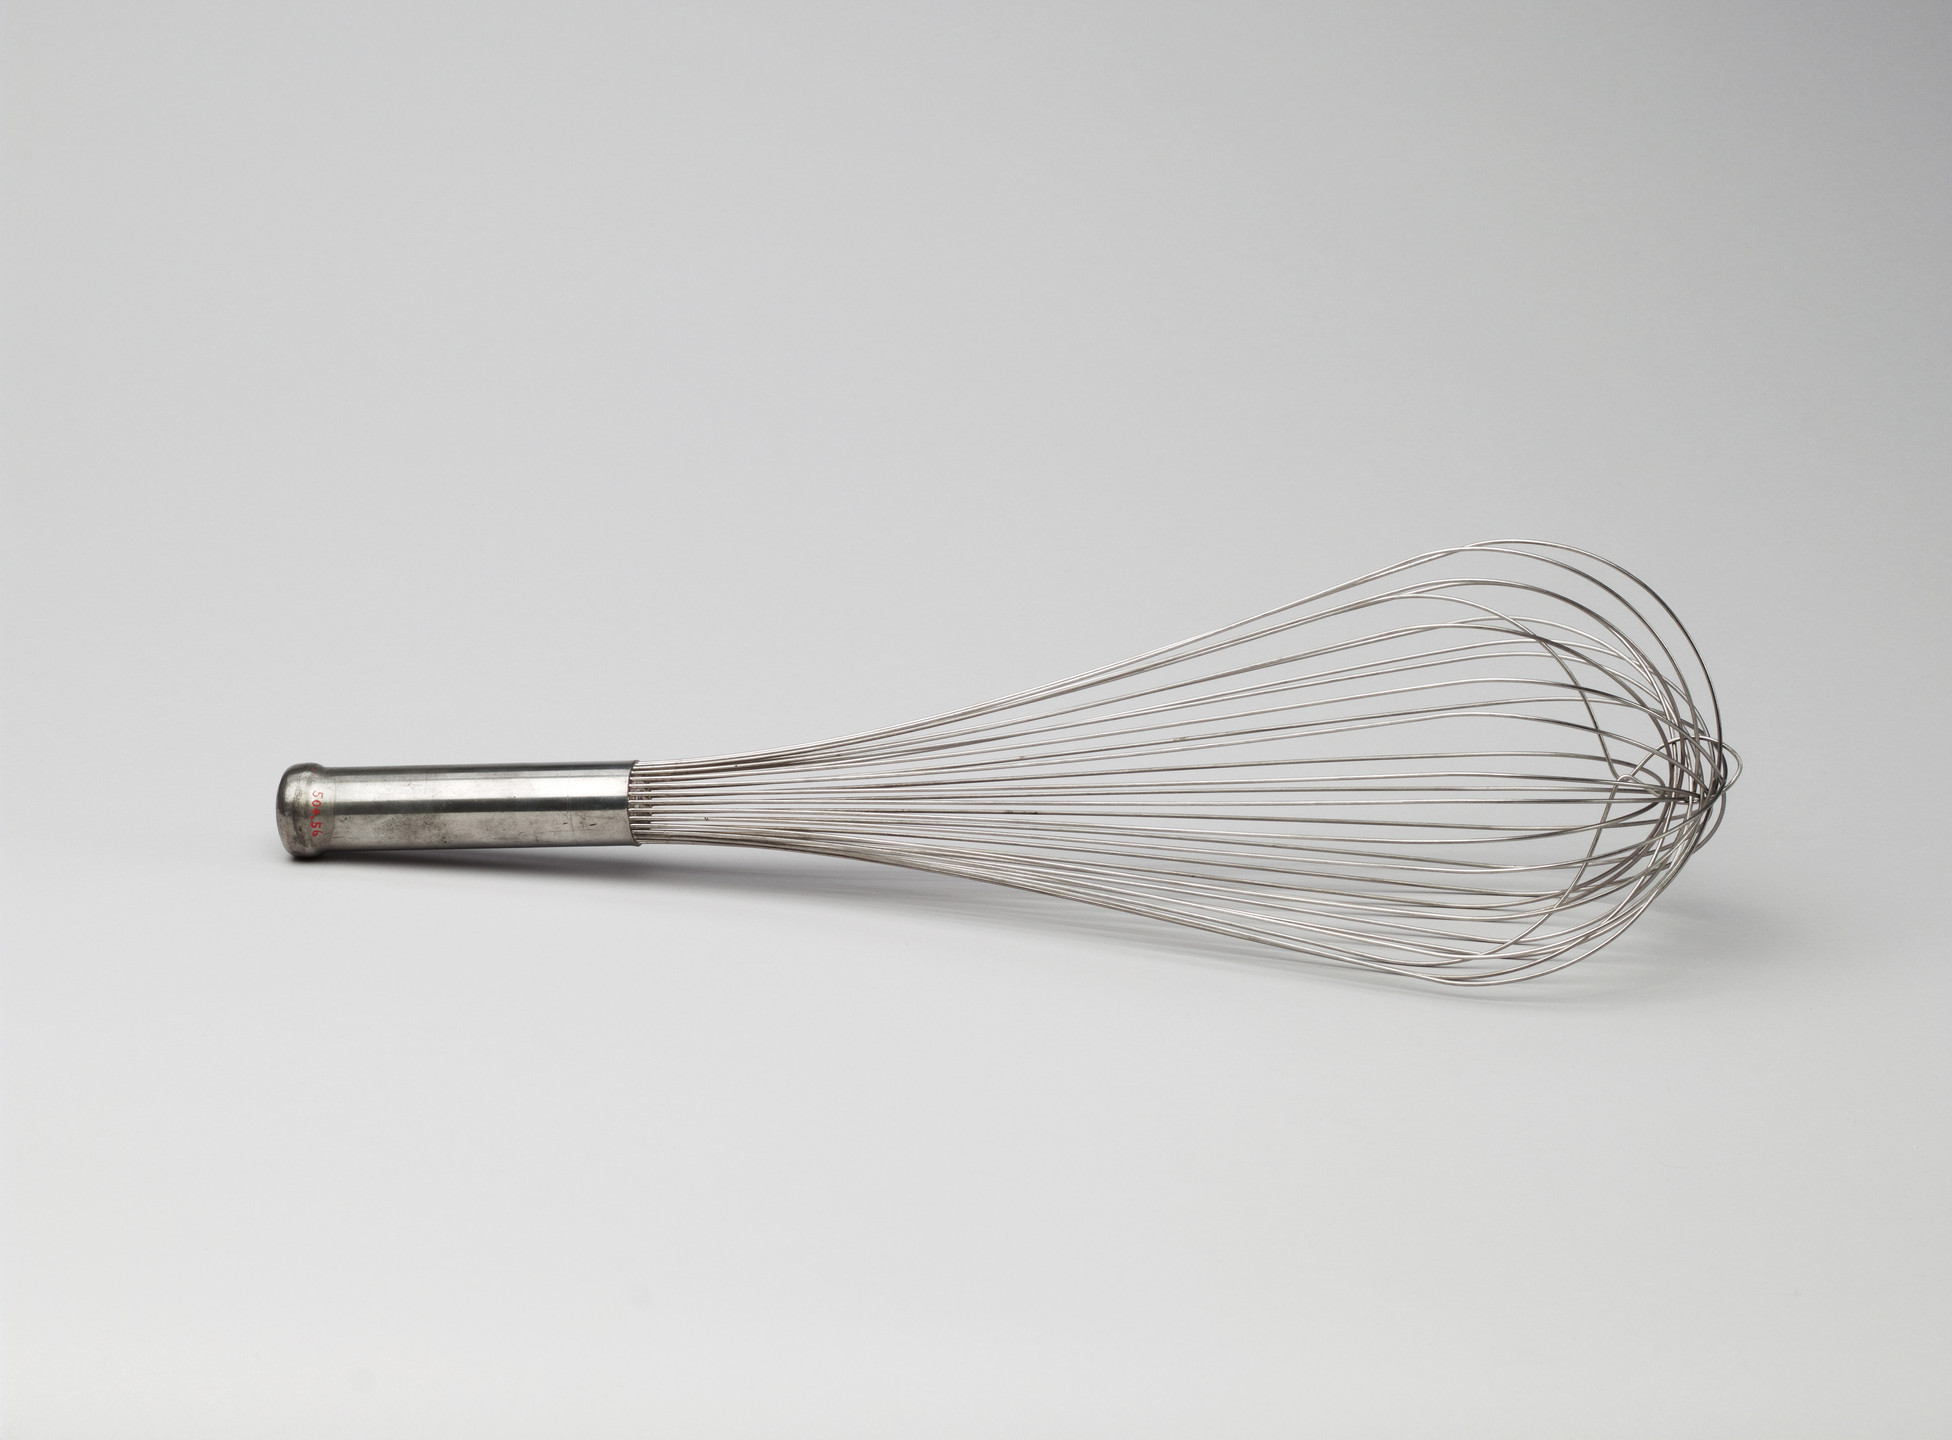 Louis Maslow. Whisk. 1940s